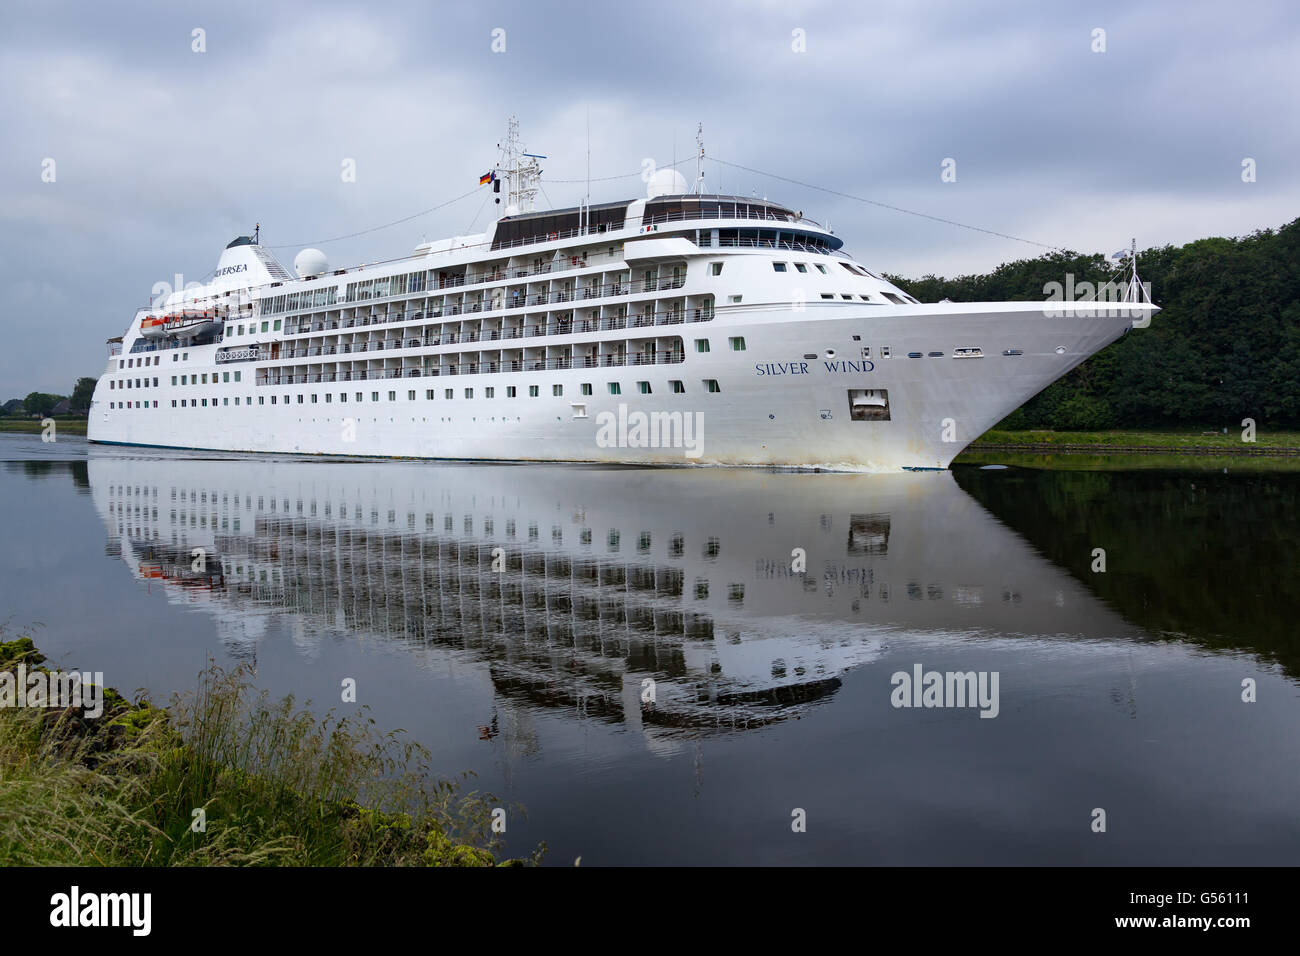 Cruise Ship 'Silver Wind' transit through the Kiel Canal on it's way from London, UK to Copenhagen, - Stock Image